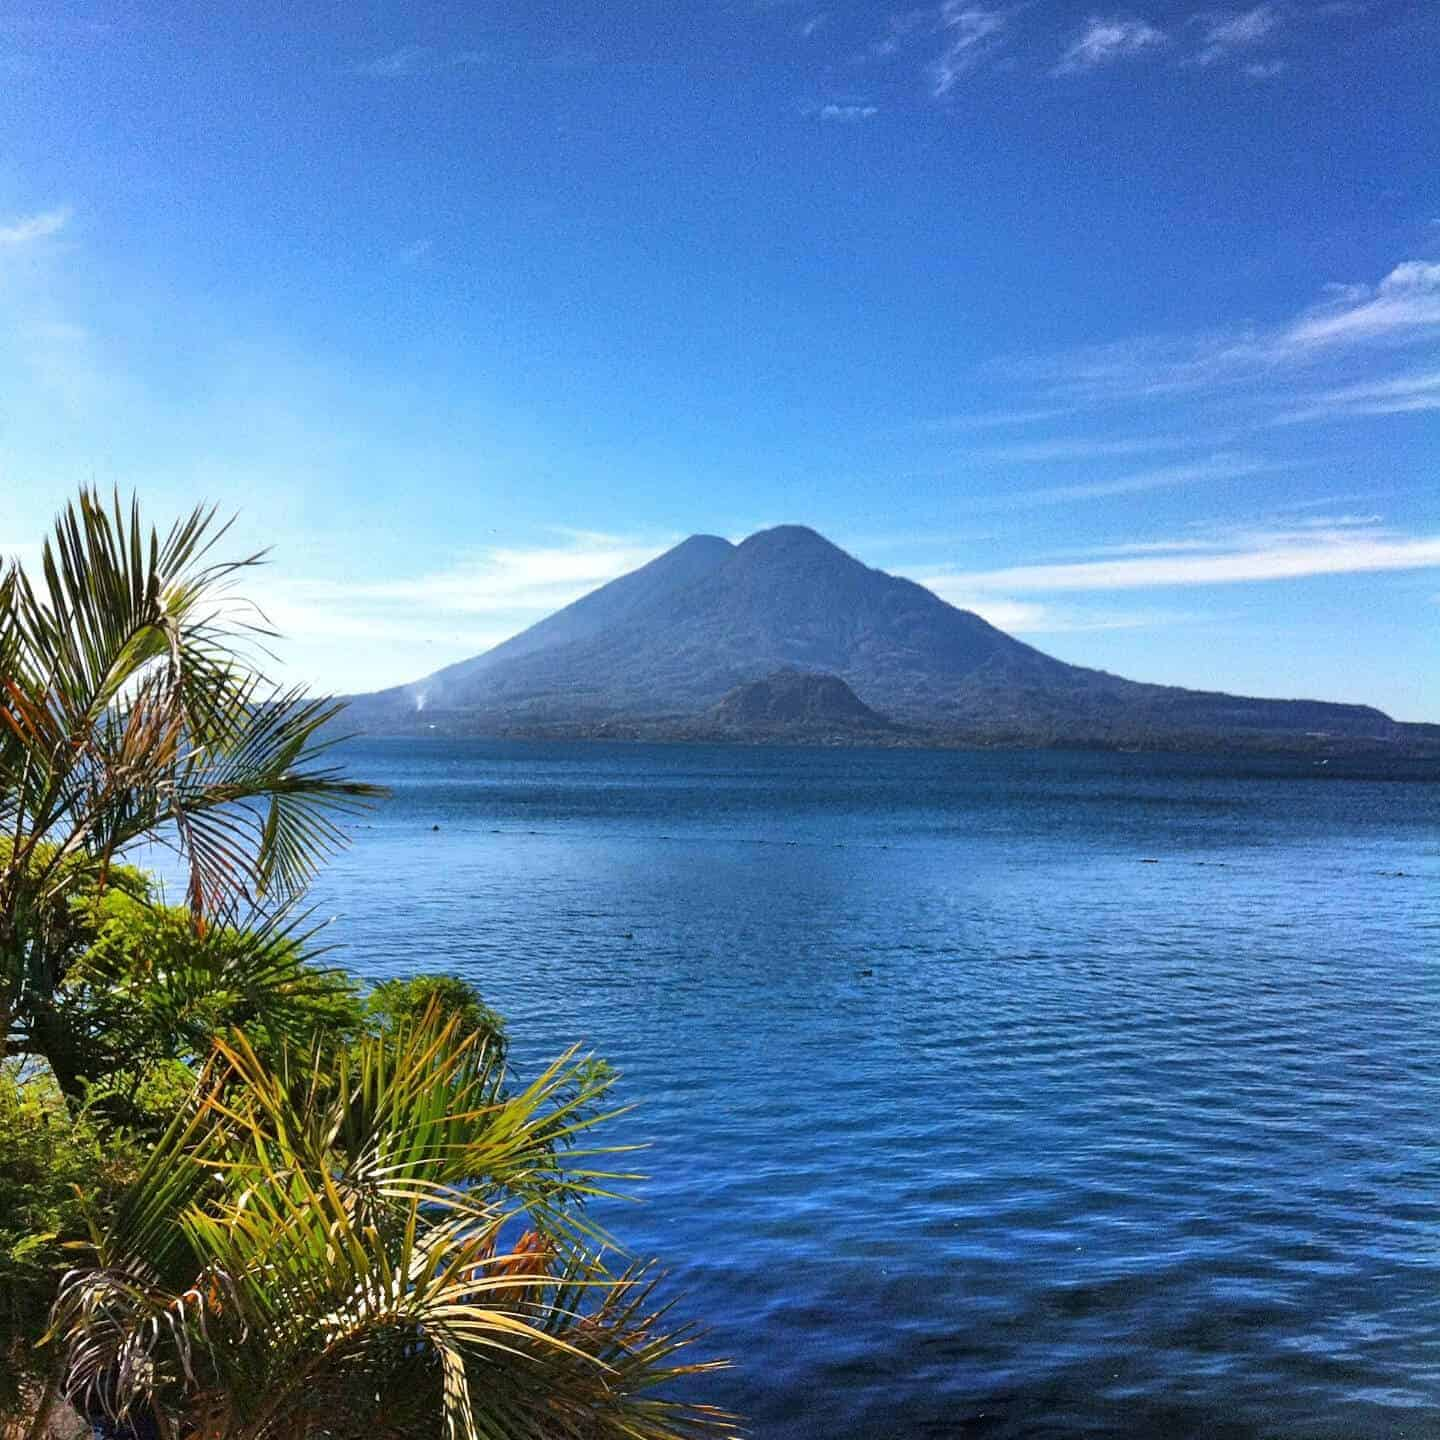 Panajachel on Lake Atitlan, Guatemala